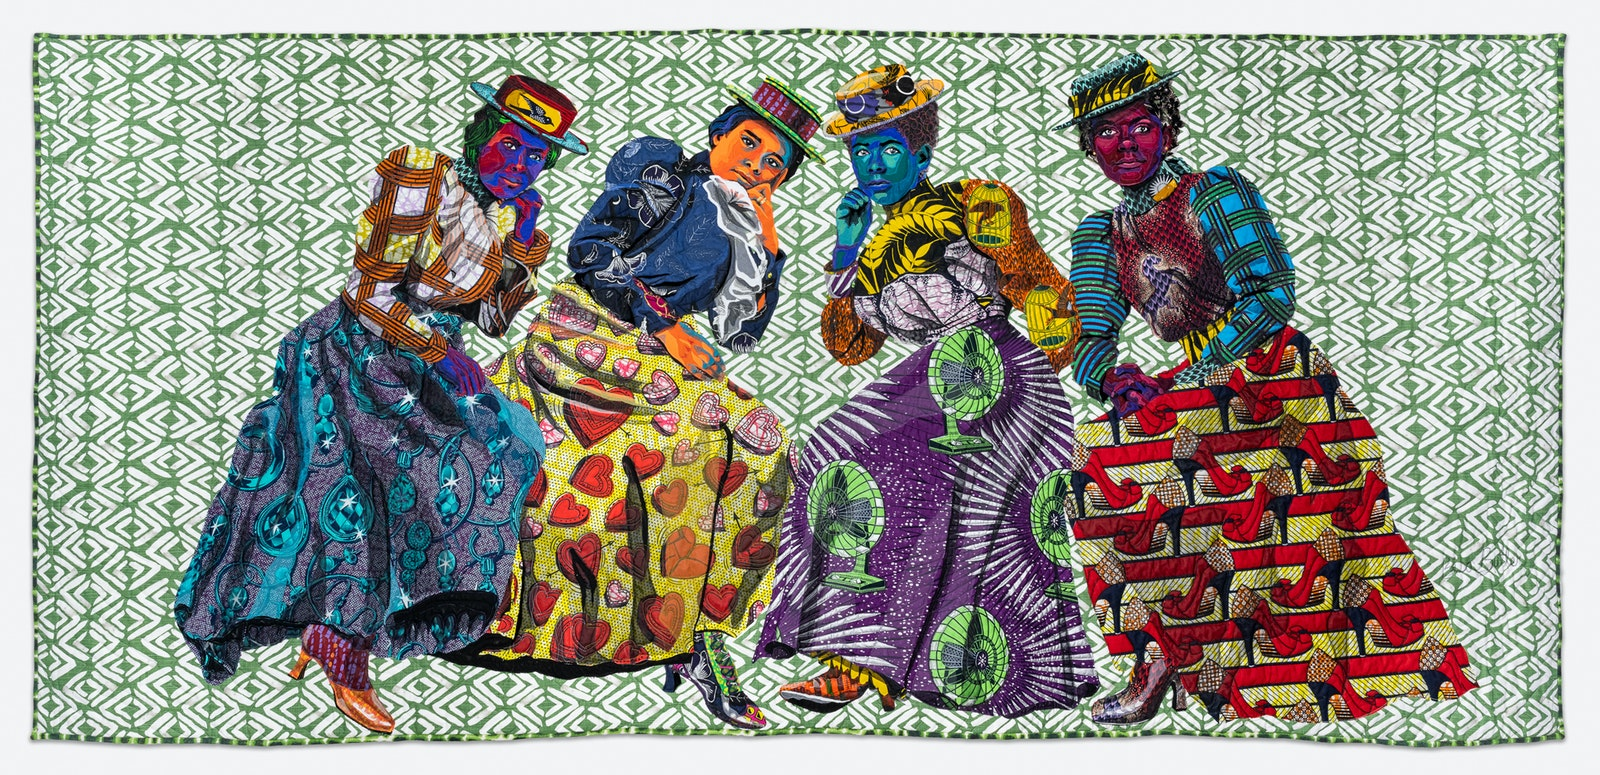 Quilted image by Bisa Butler